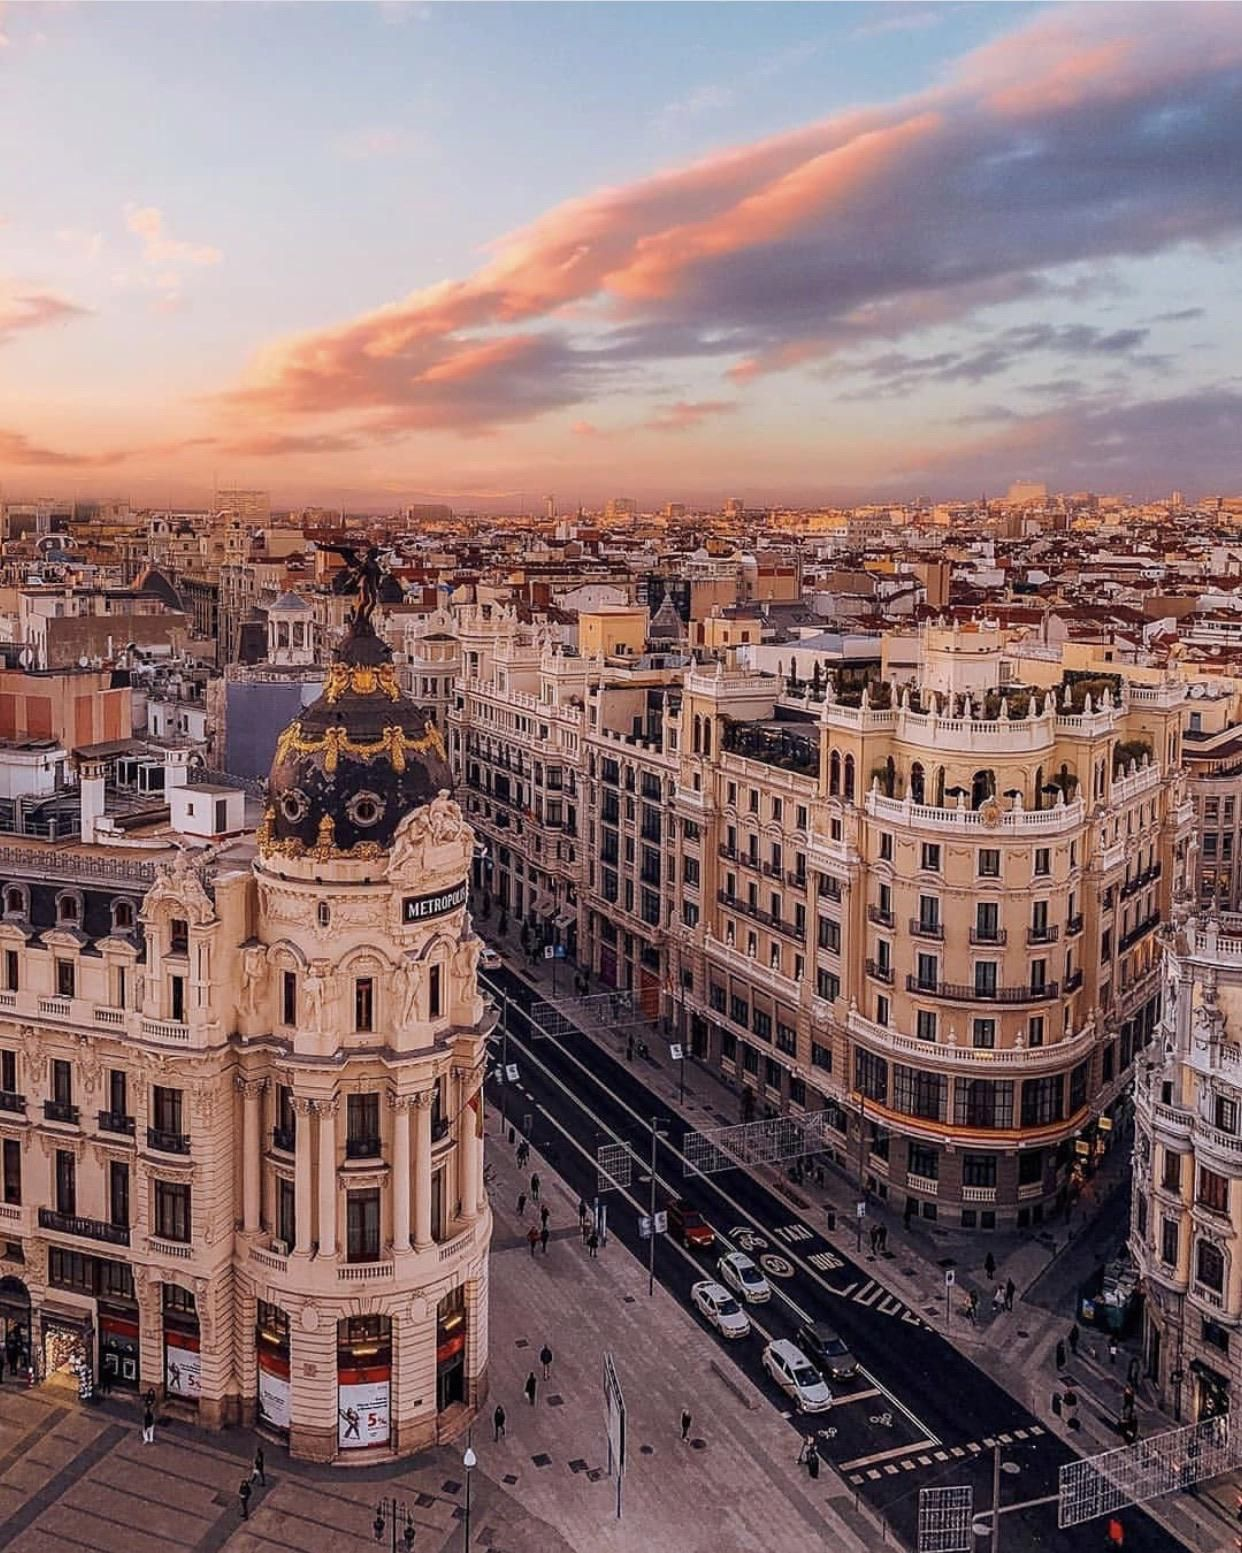 Madrid/Spain #city #cities #buildings #photography